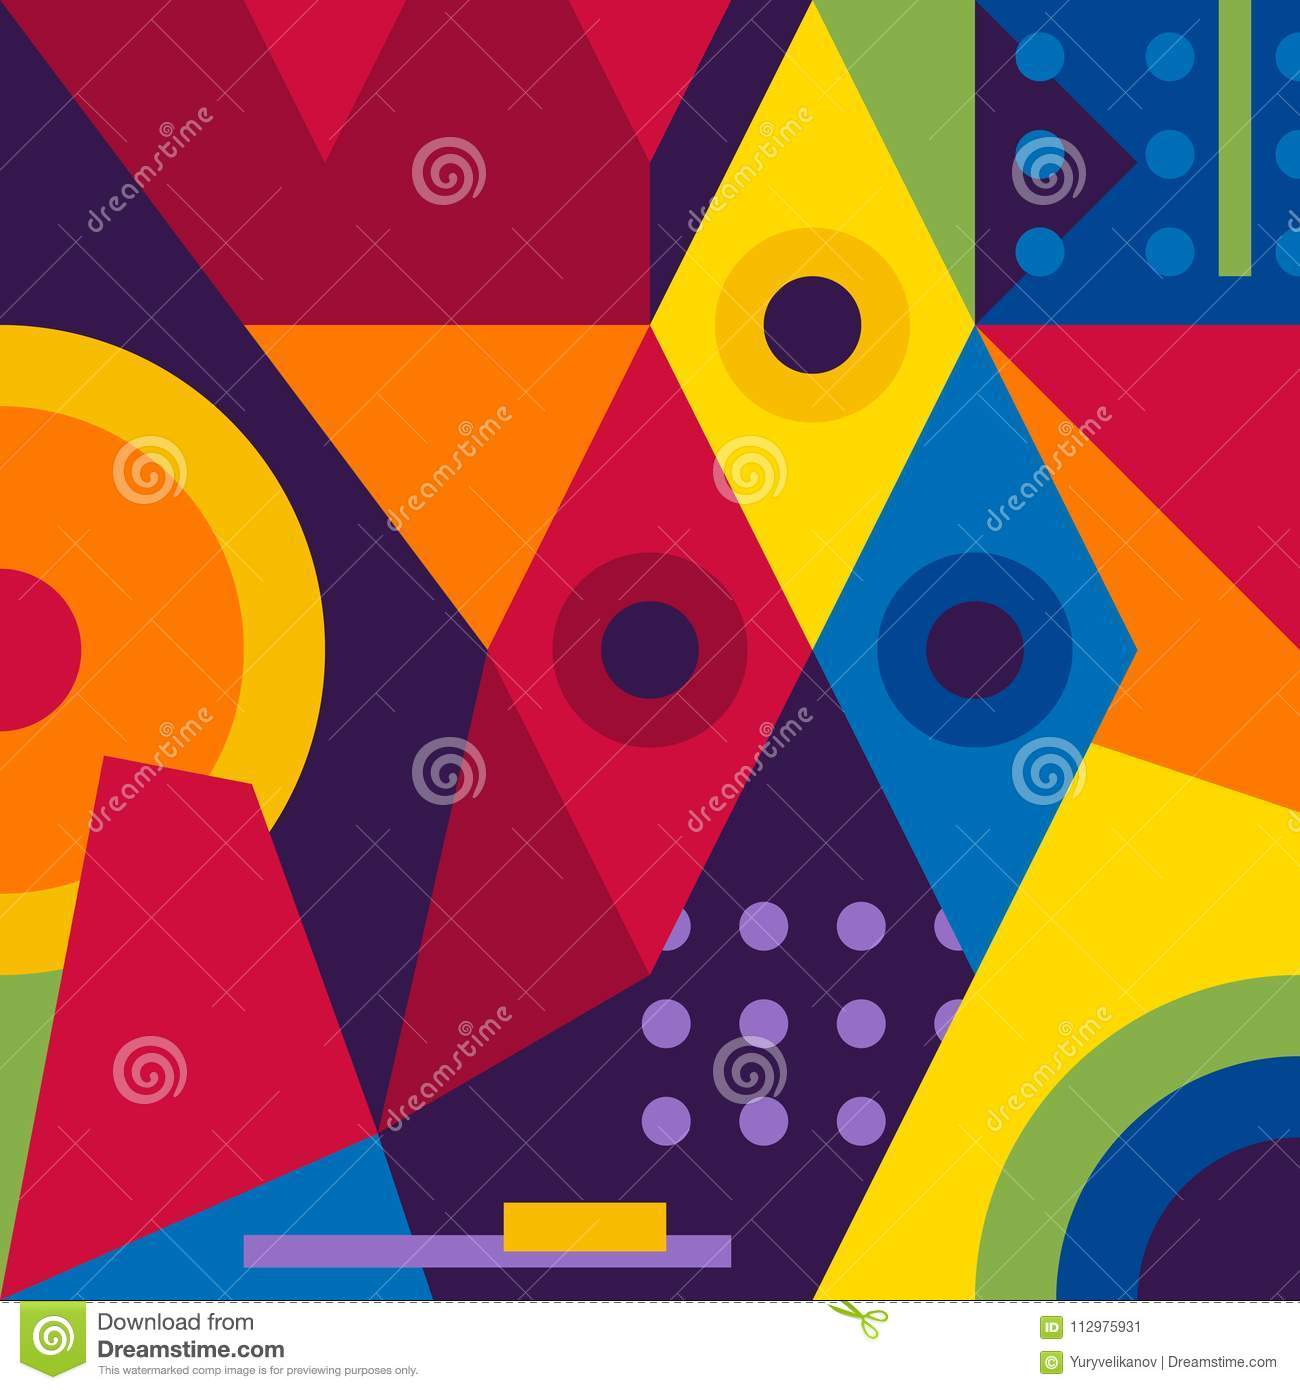 Abstract modern geometric background. Composition 16